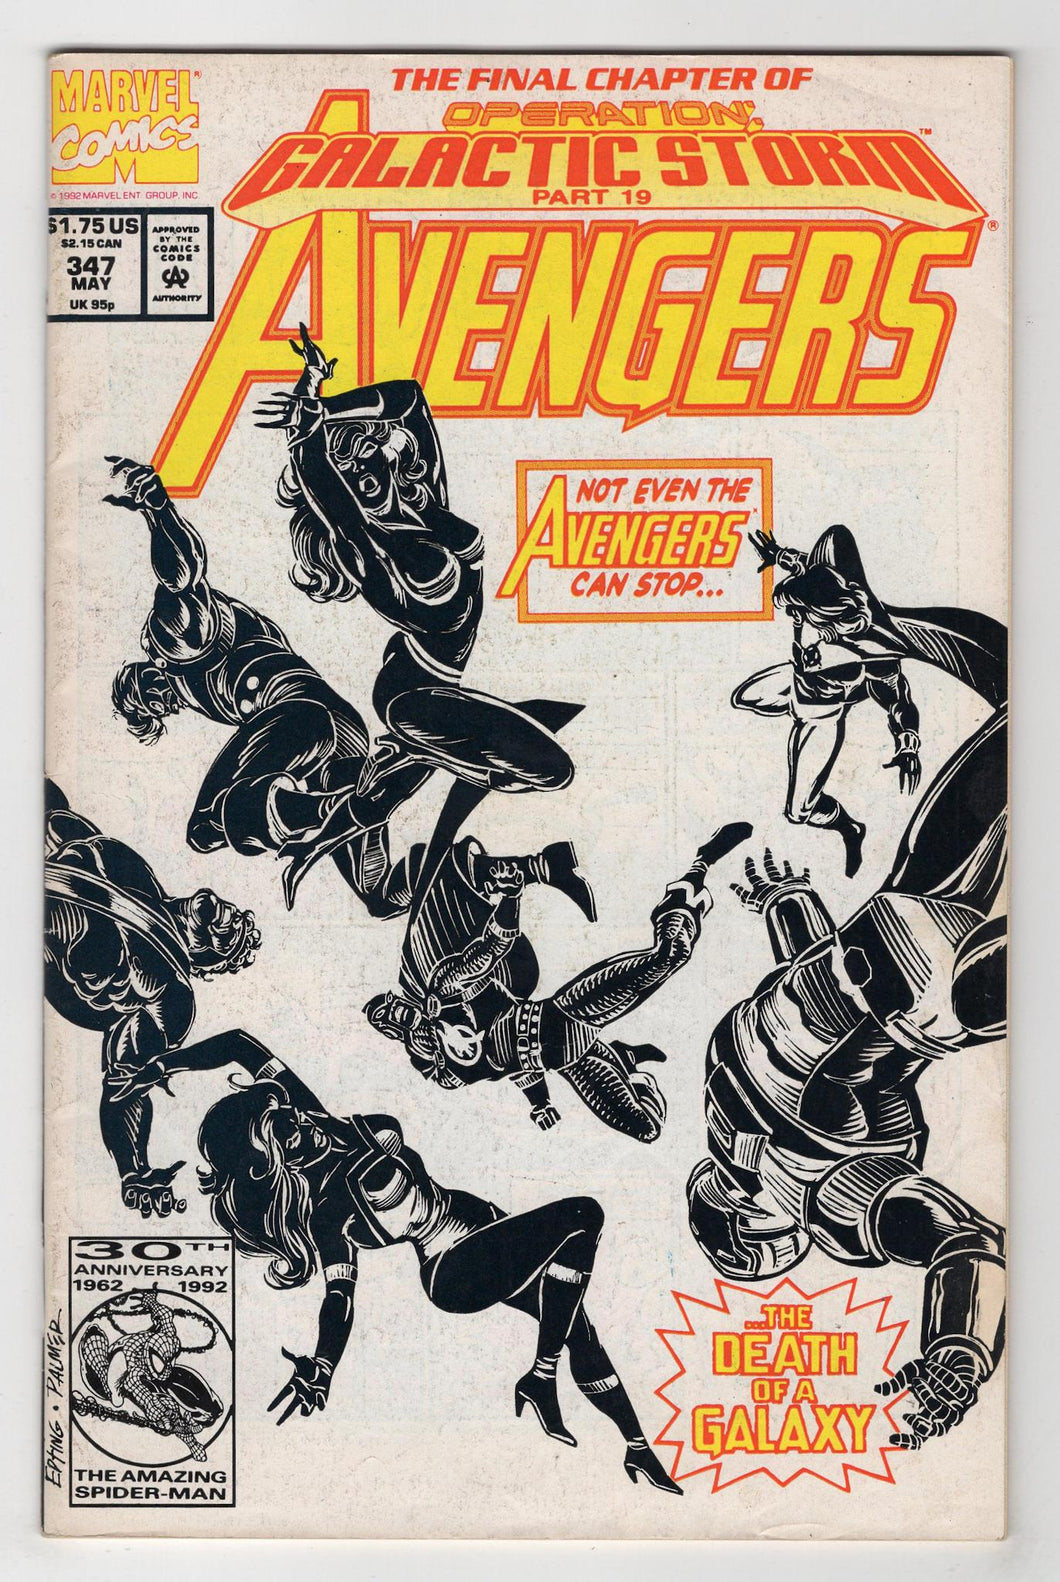 Avengers #347 Cover Front